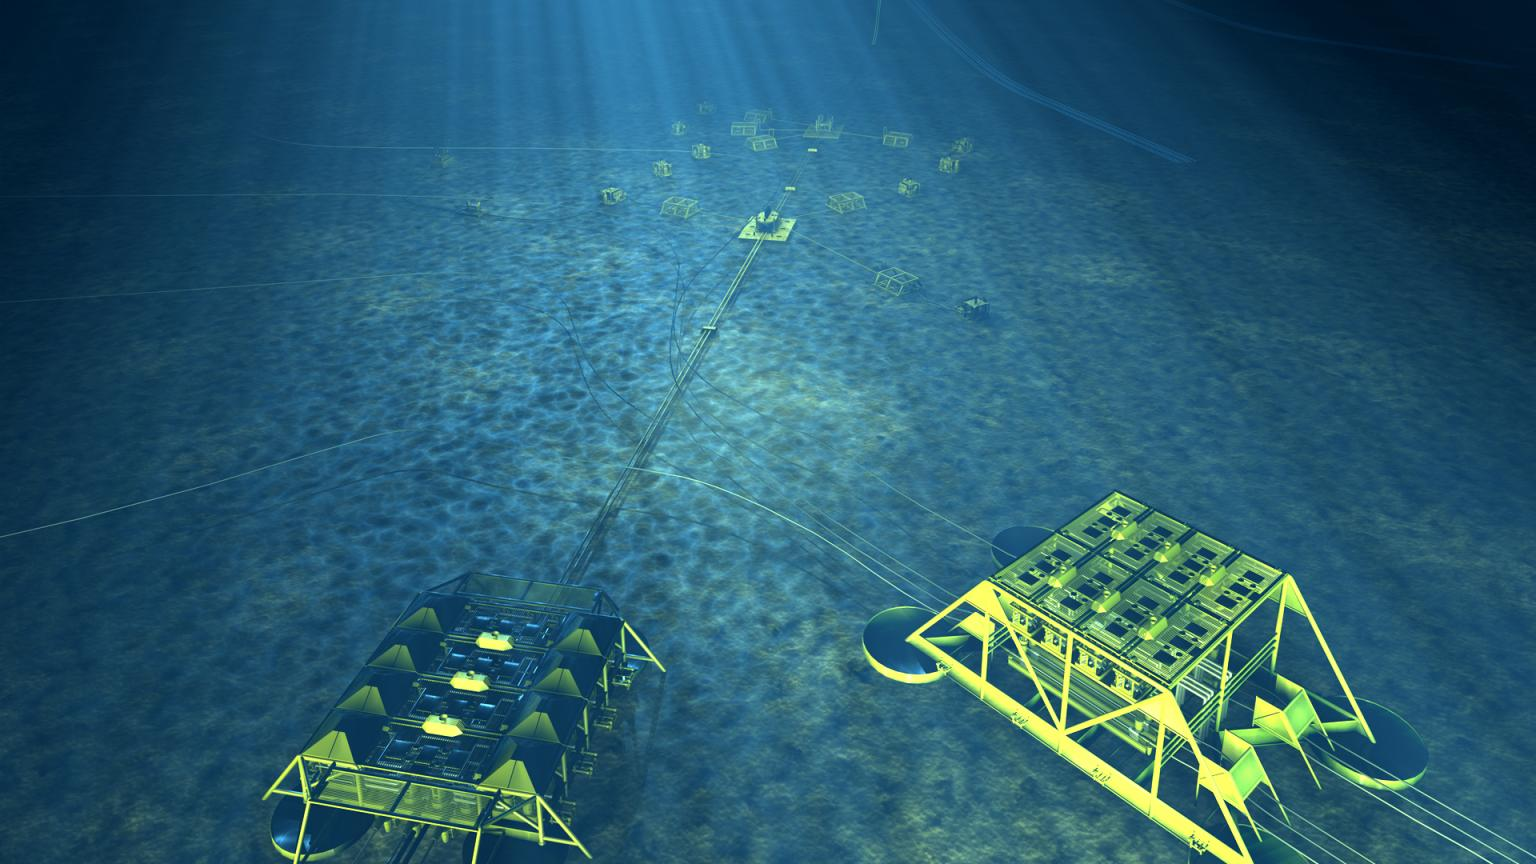 The focus is on more efficient and cost-effective subsea development processes, without sacrificing quality or safety